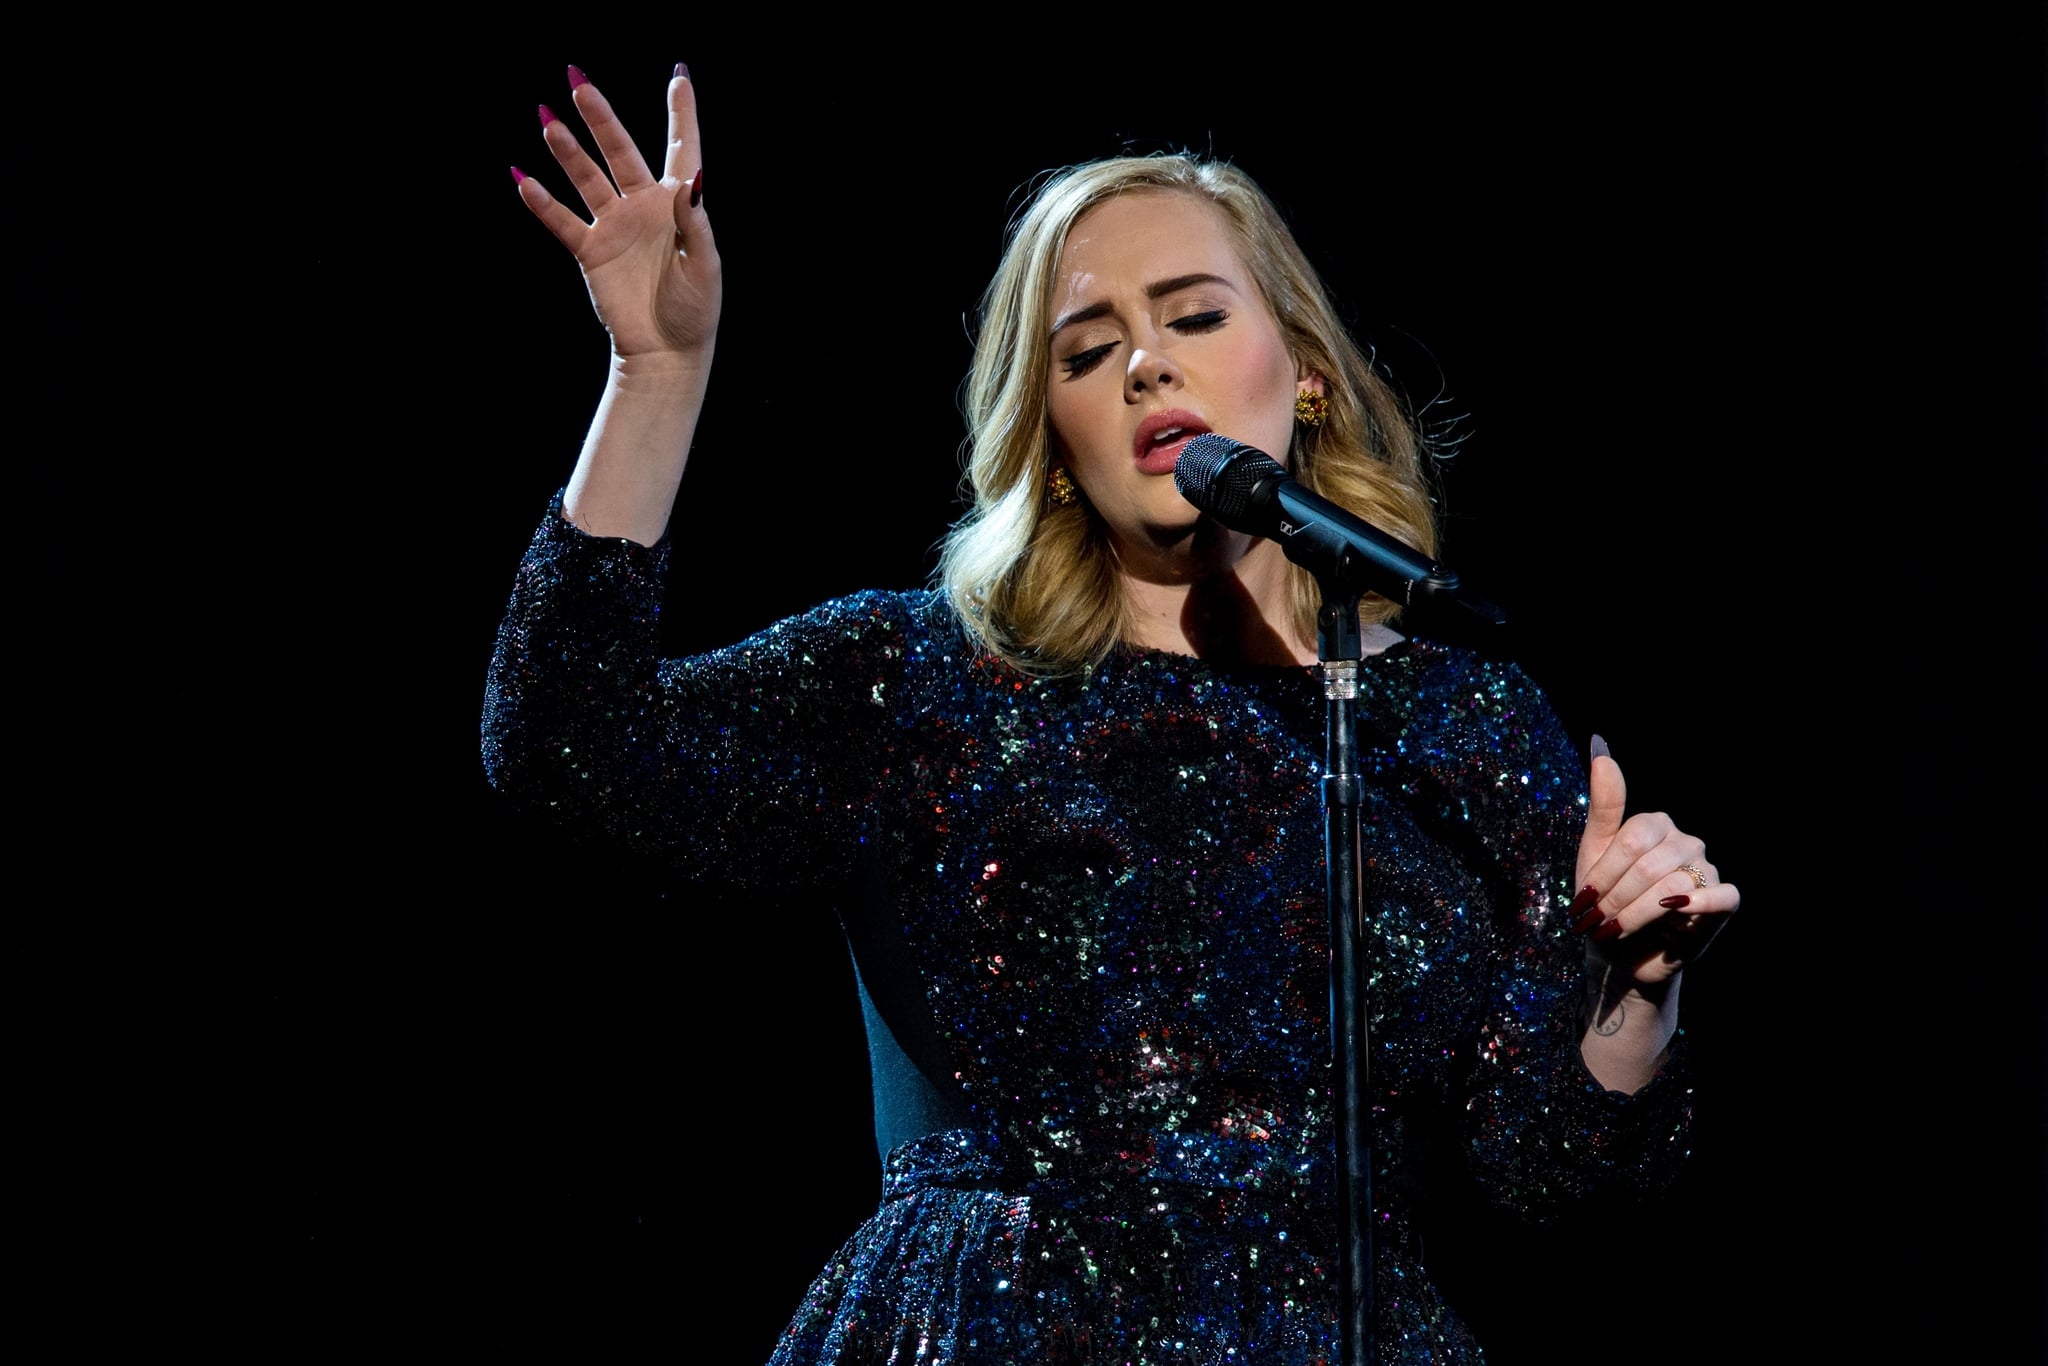 ZURICH, SWITZERLAND - MAY 17: Adele performs on stage at Hallenstadion on May 17, 2016 in Zurich, Switzerland. (Photo by Philipp Schmidli/Getty Images for September Management)